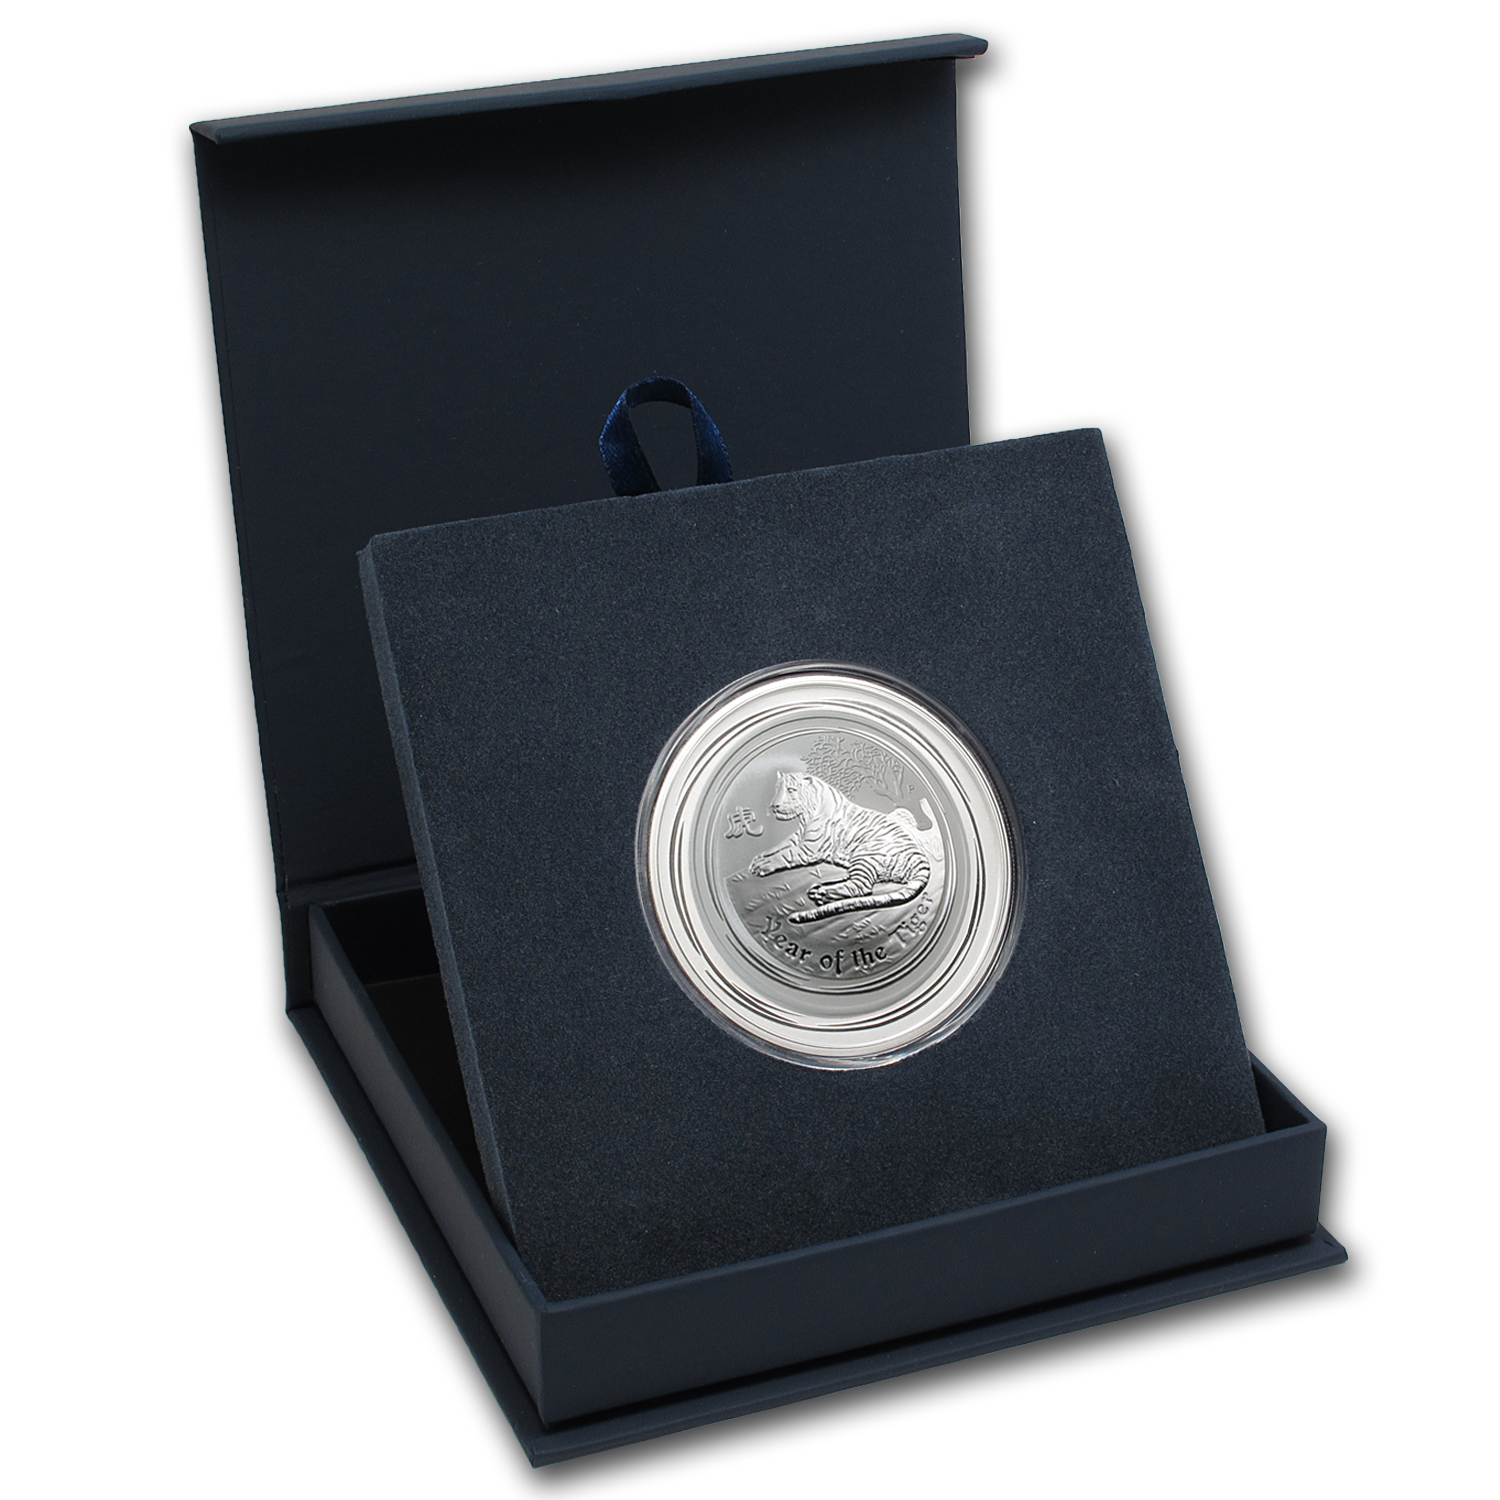 APMEX Gift Box - 2 oz Perth Mint Silver Coin